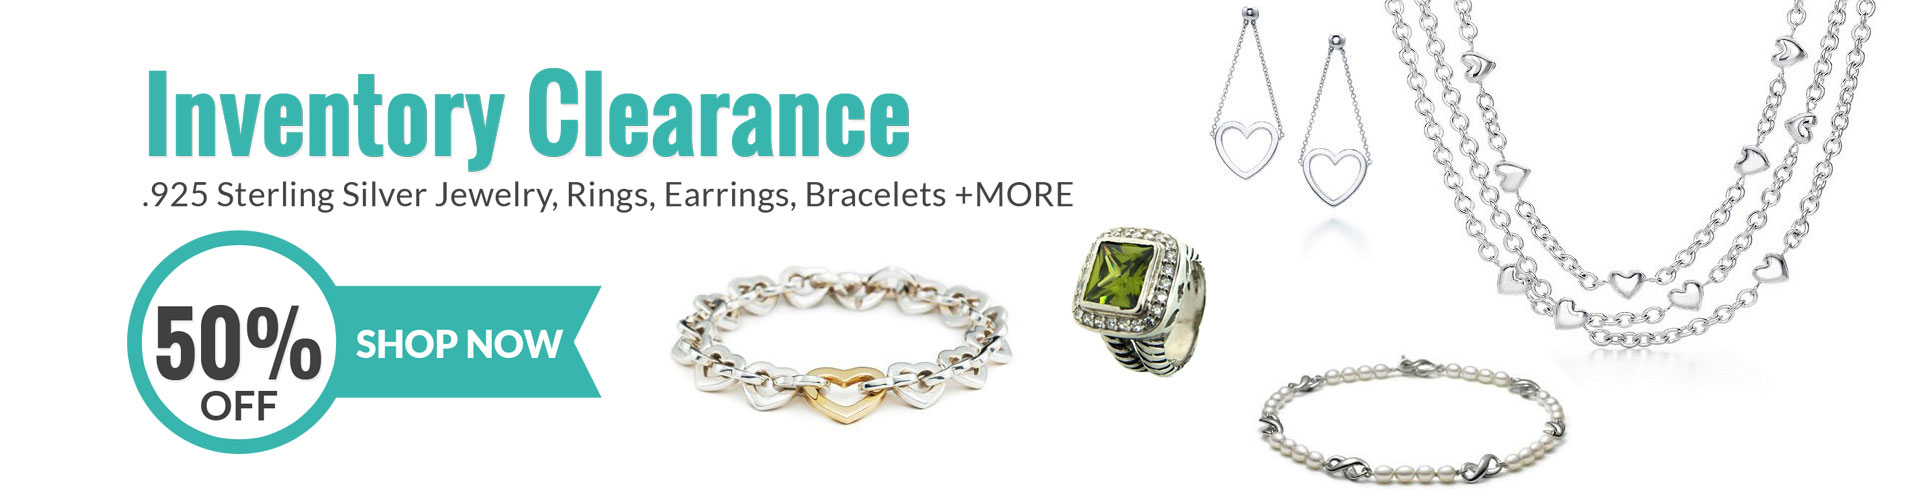 Designer Inspired Jewelry Inventory Clearance Sale